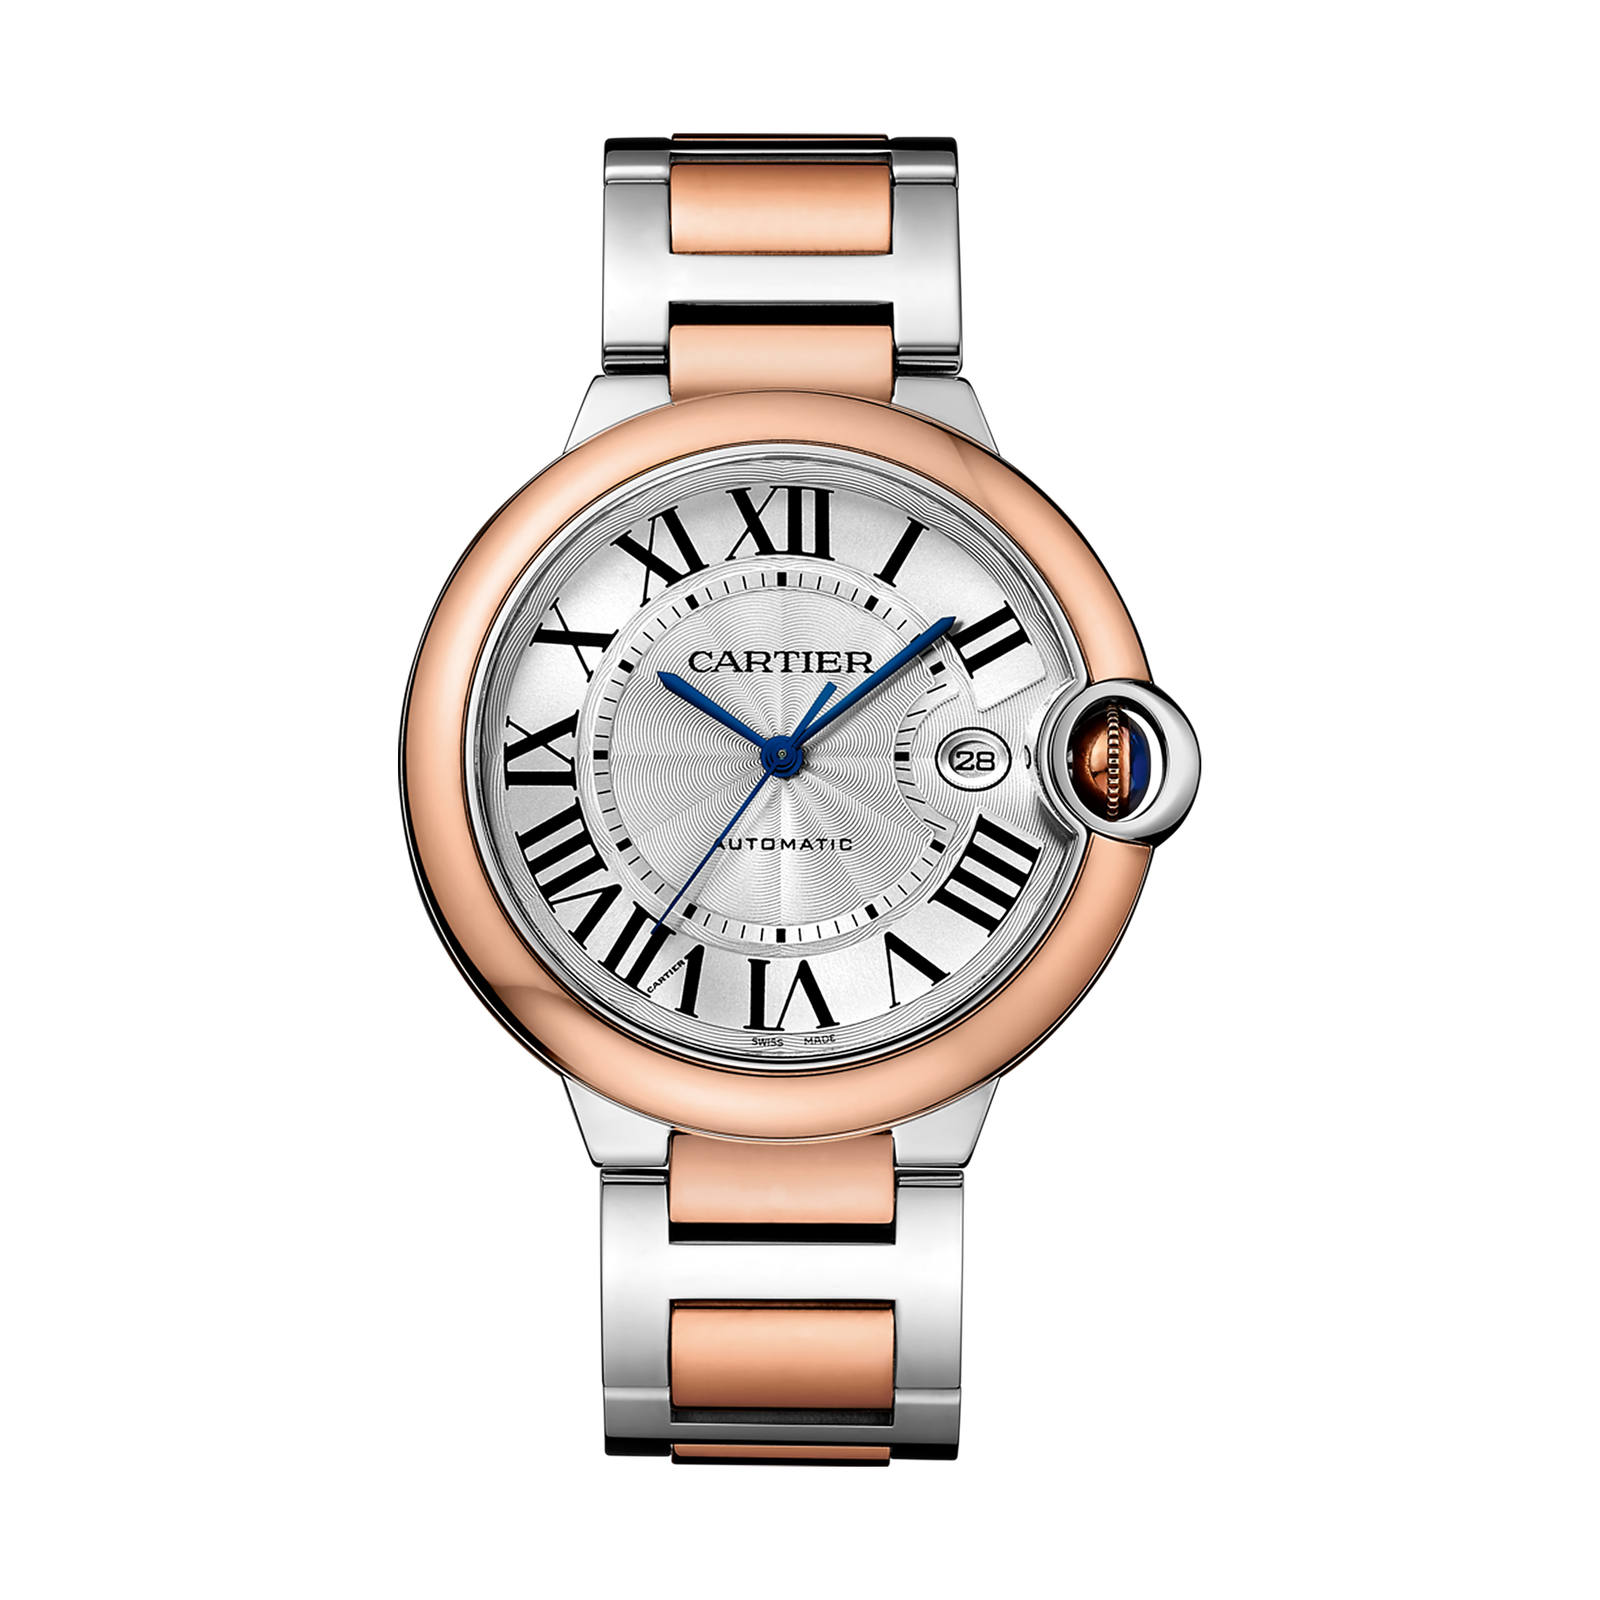 Ballon Bleu de Cartier watch, 42 mm, 18K pink gold and steel